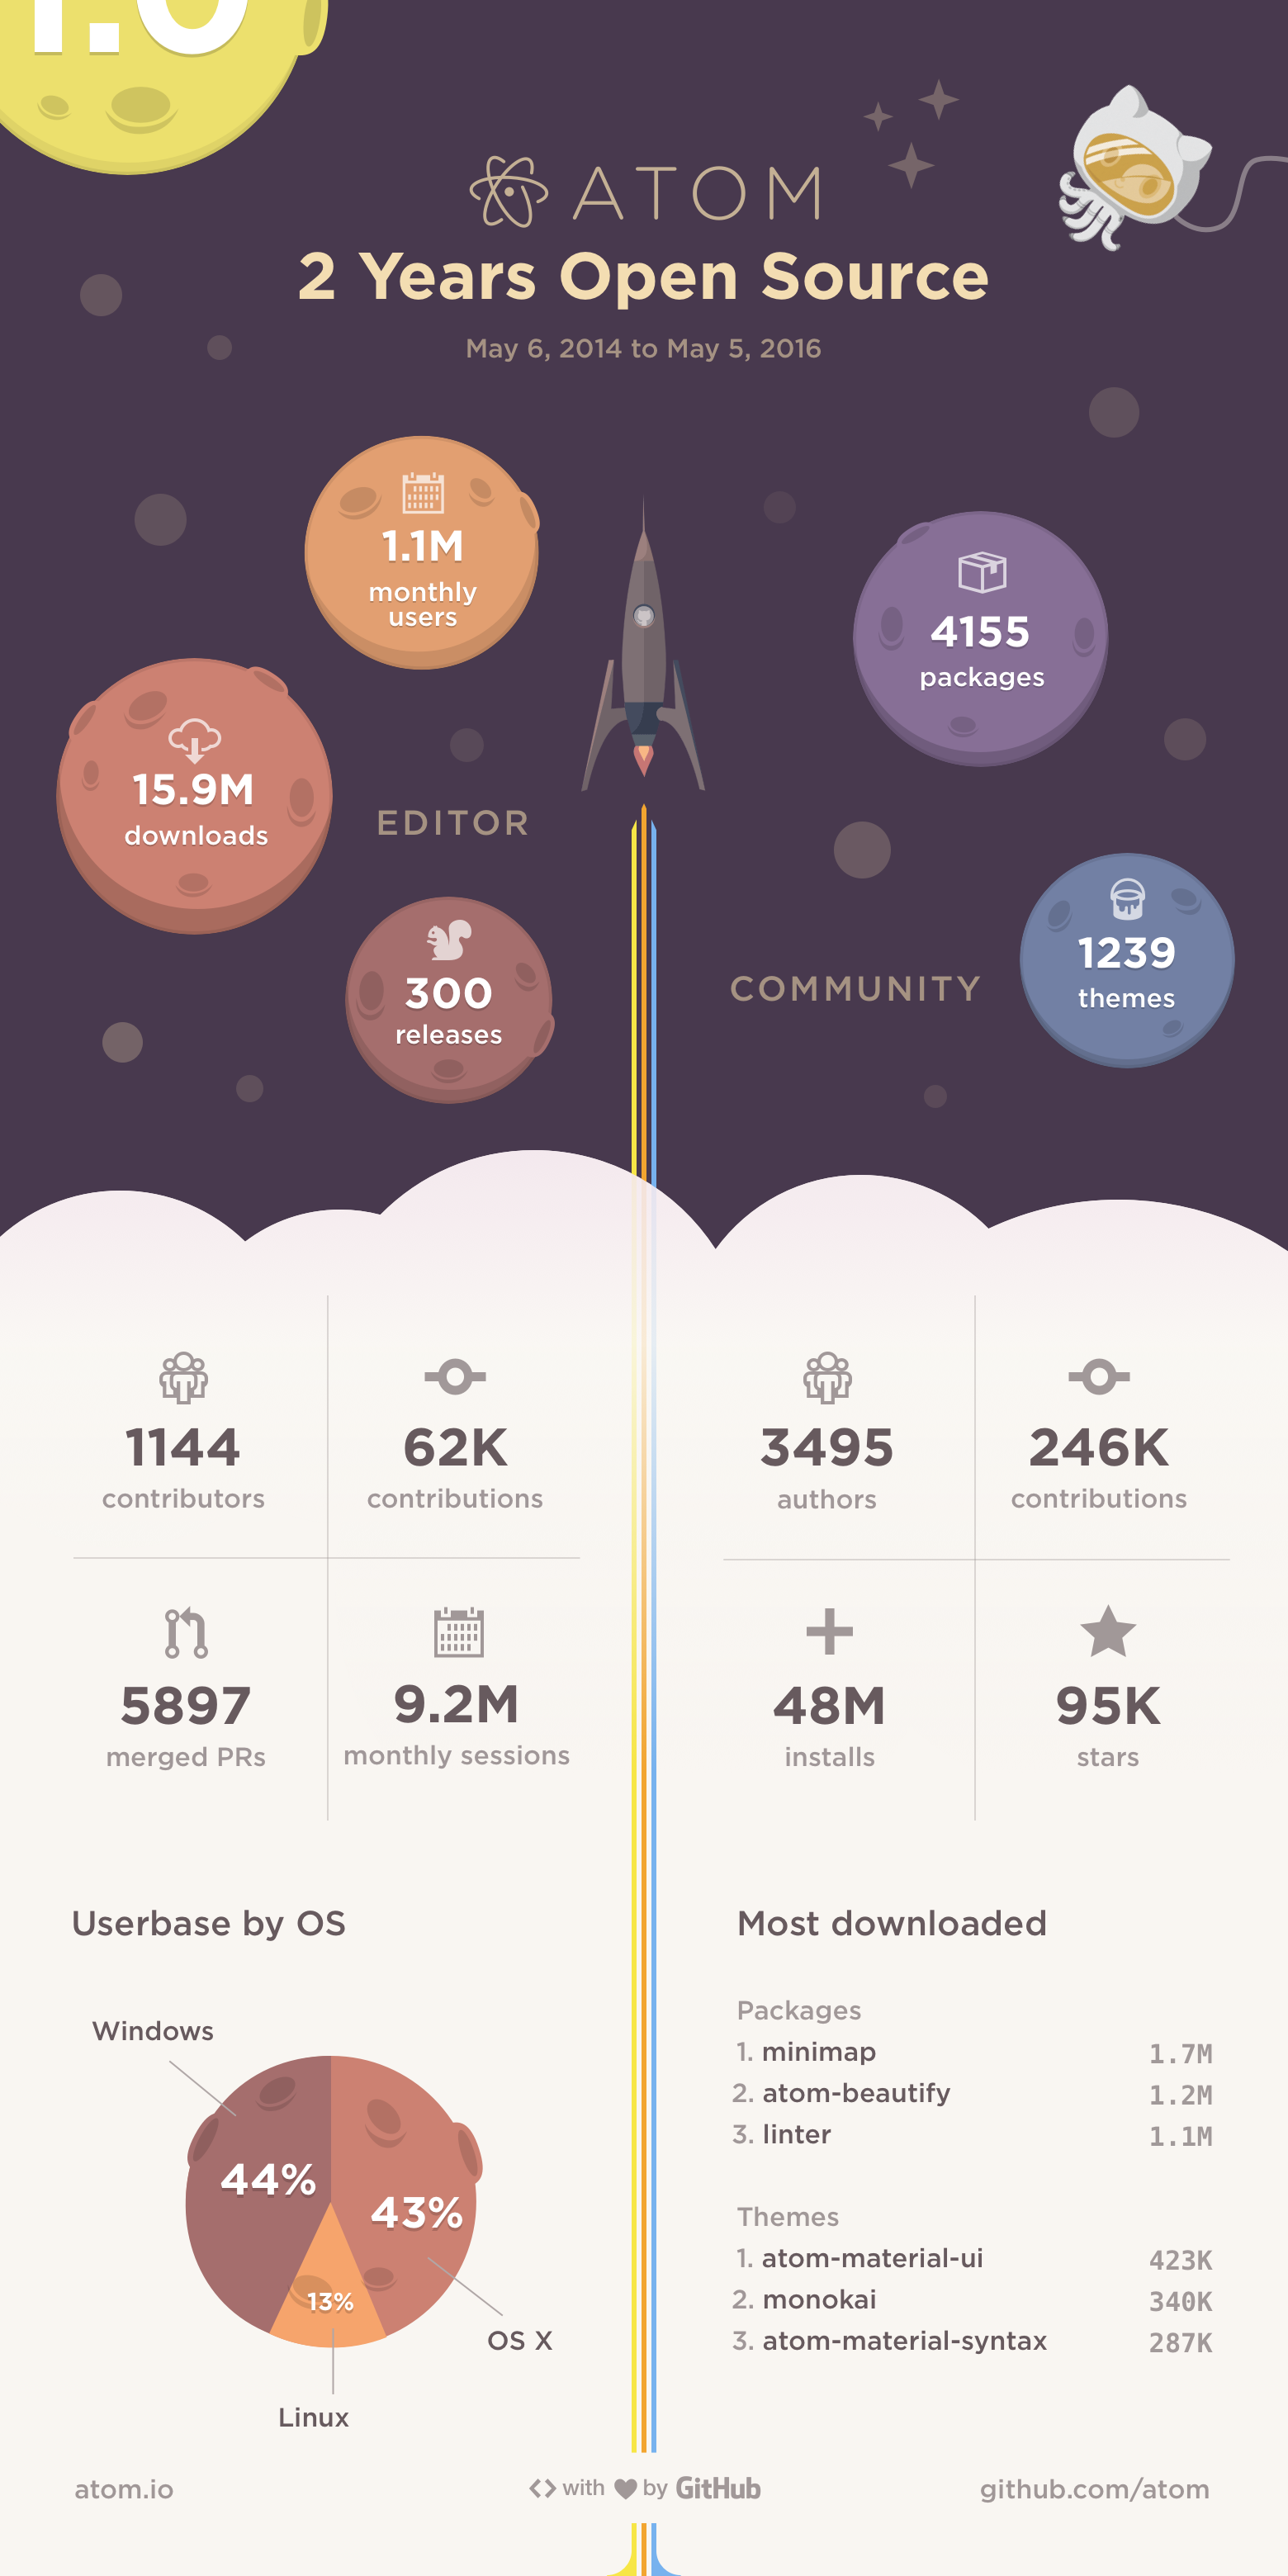 Infographic: 2 Years Open Source